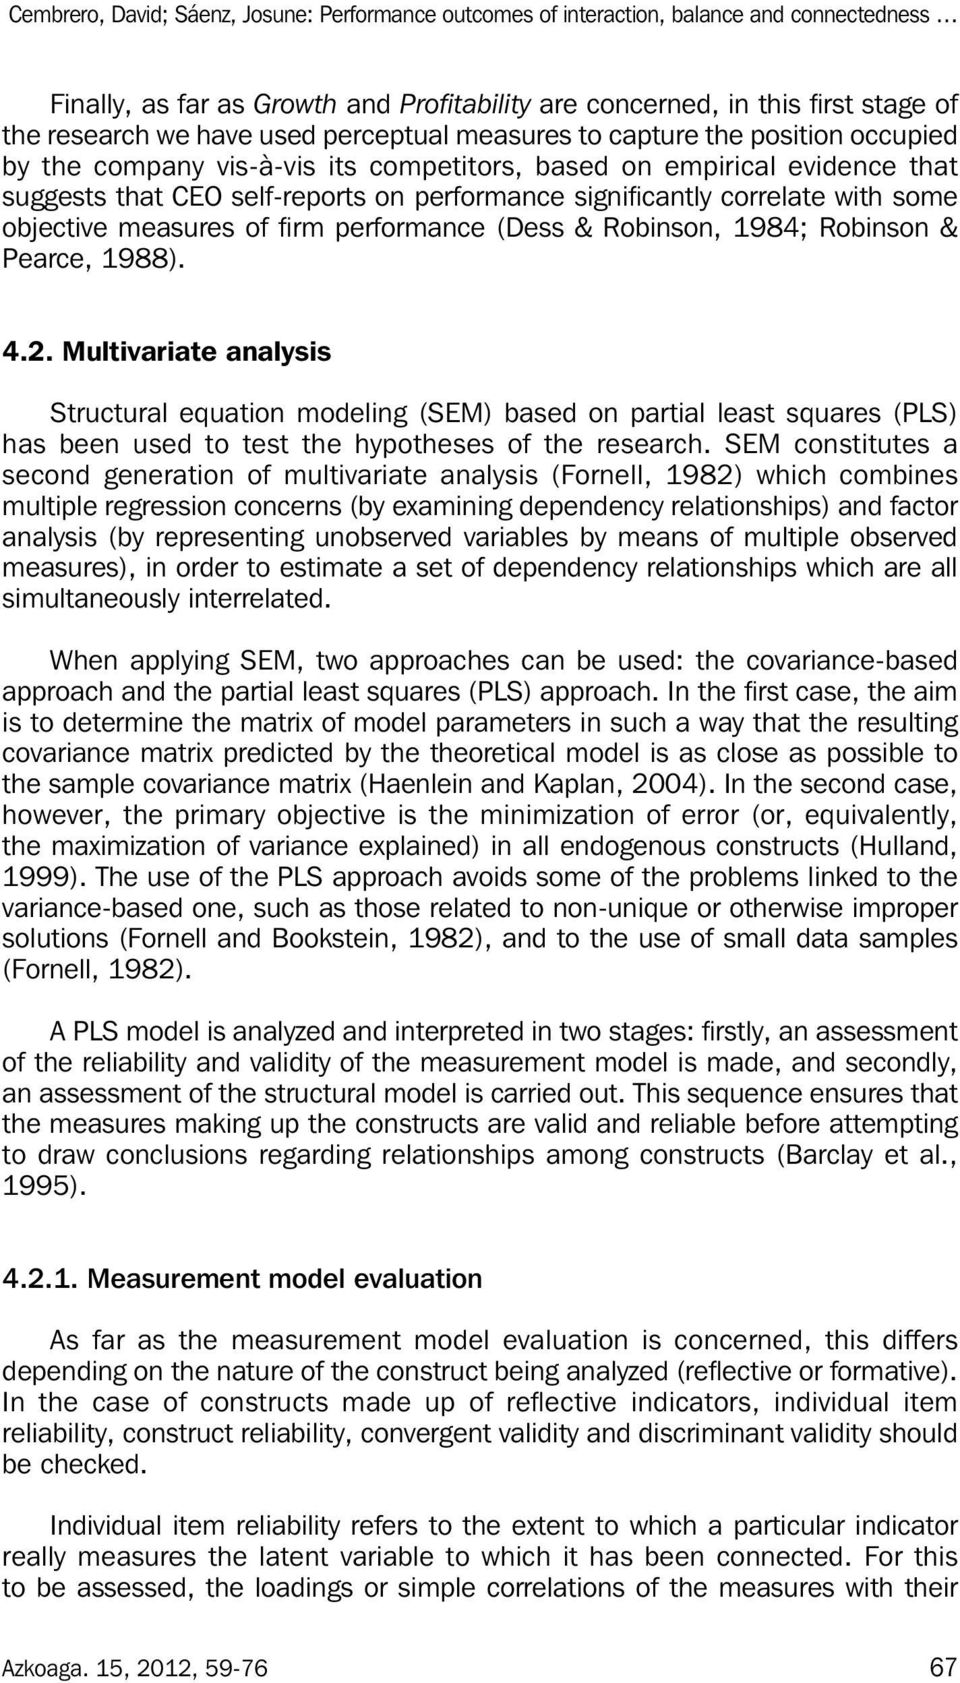 & Pearce, 1988). 4.2. Multivariate analysis Structural equation modeling (SEM) based on partial least squares (PLS) has been used to test the hypotheses of the research.